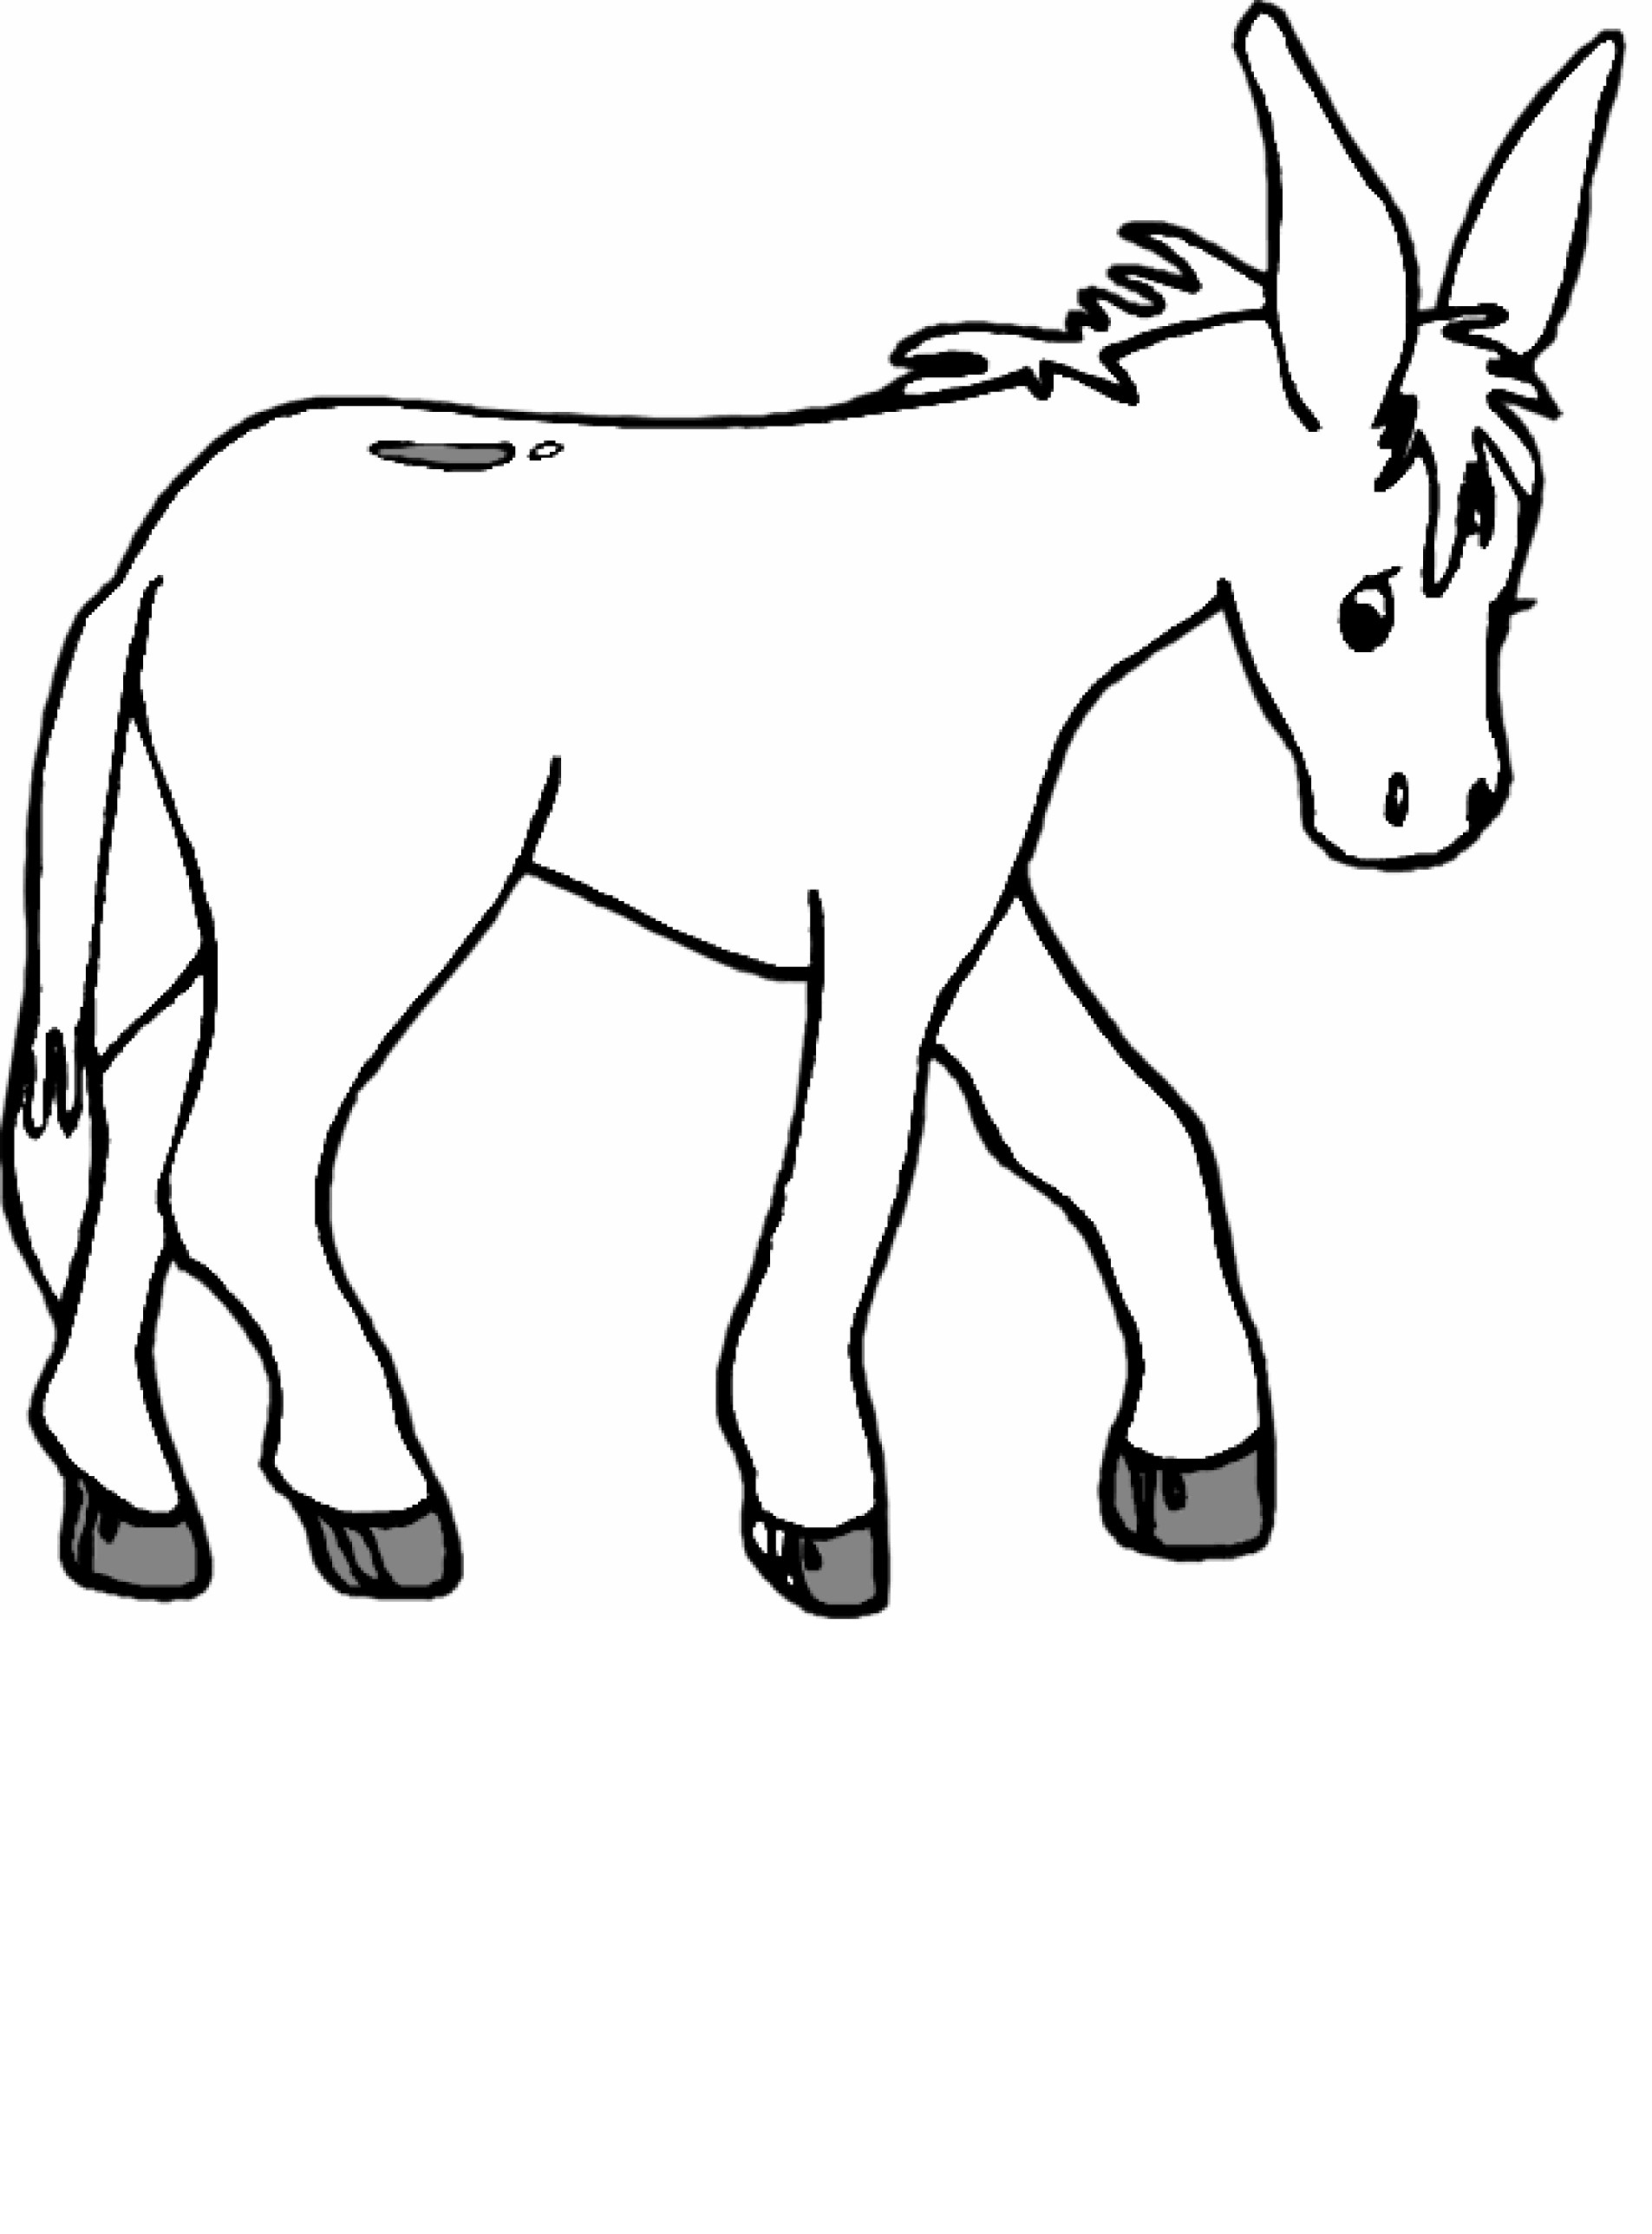 donkey coloring pages for kids - Donkey Coloring Pages